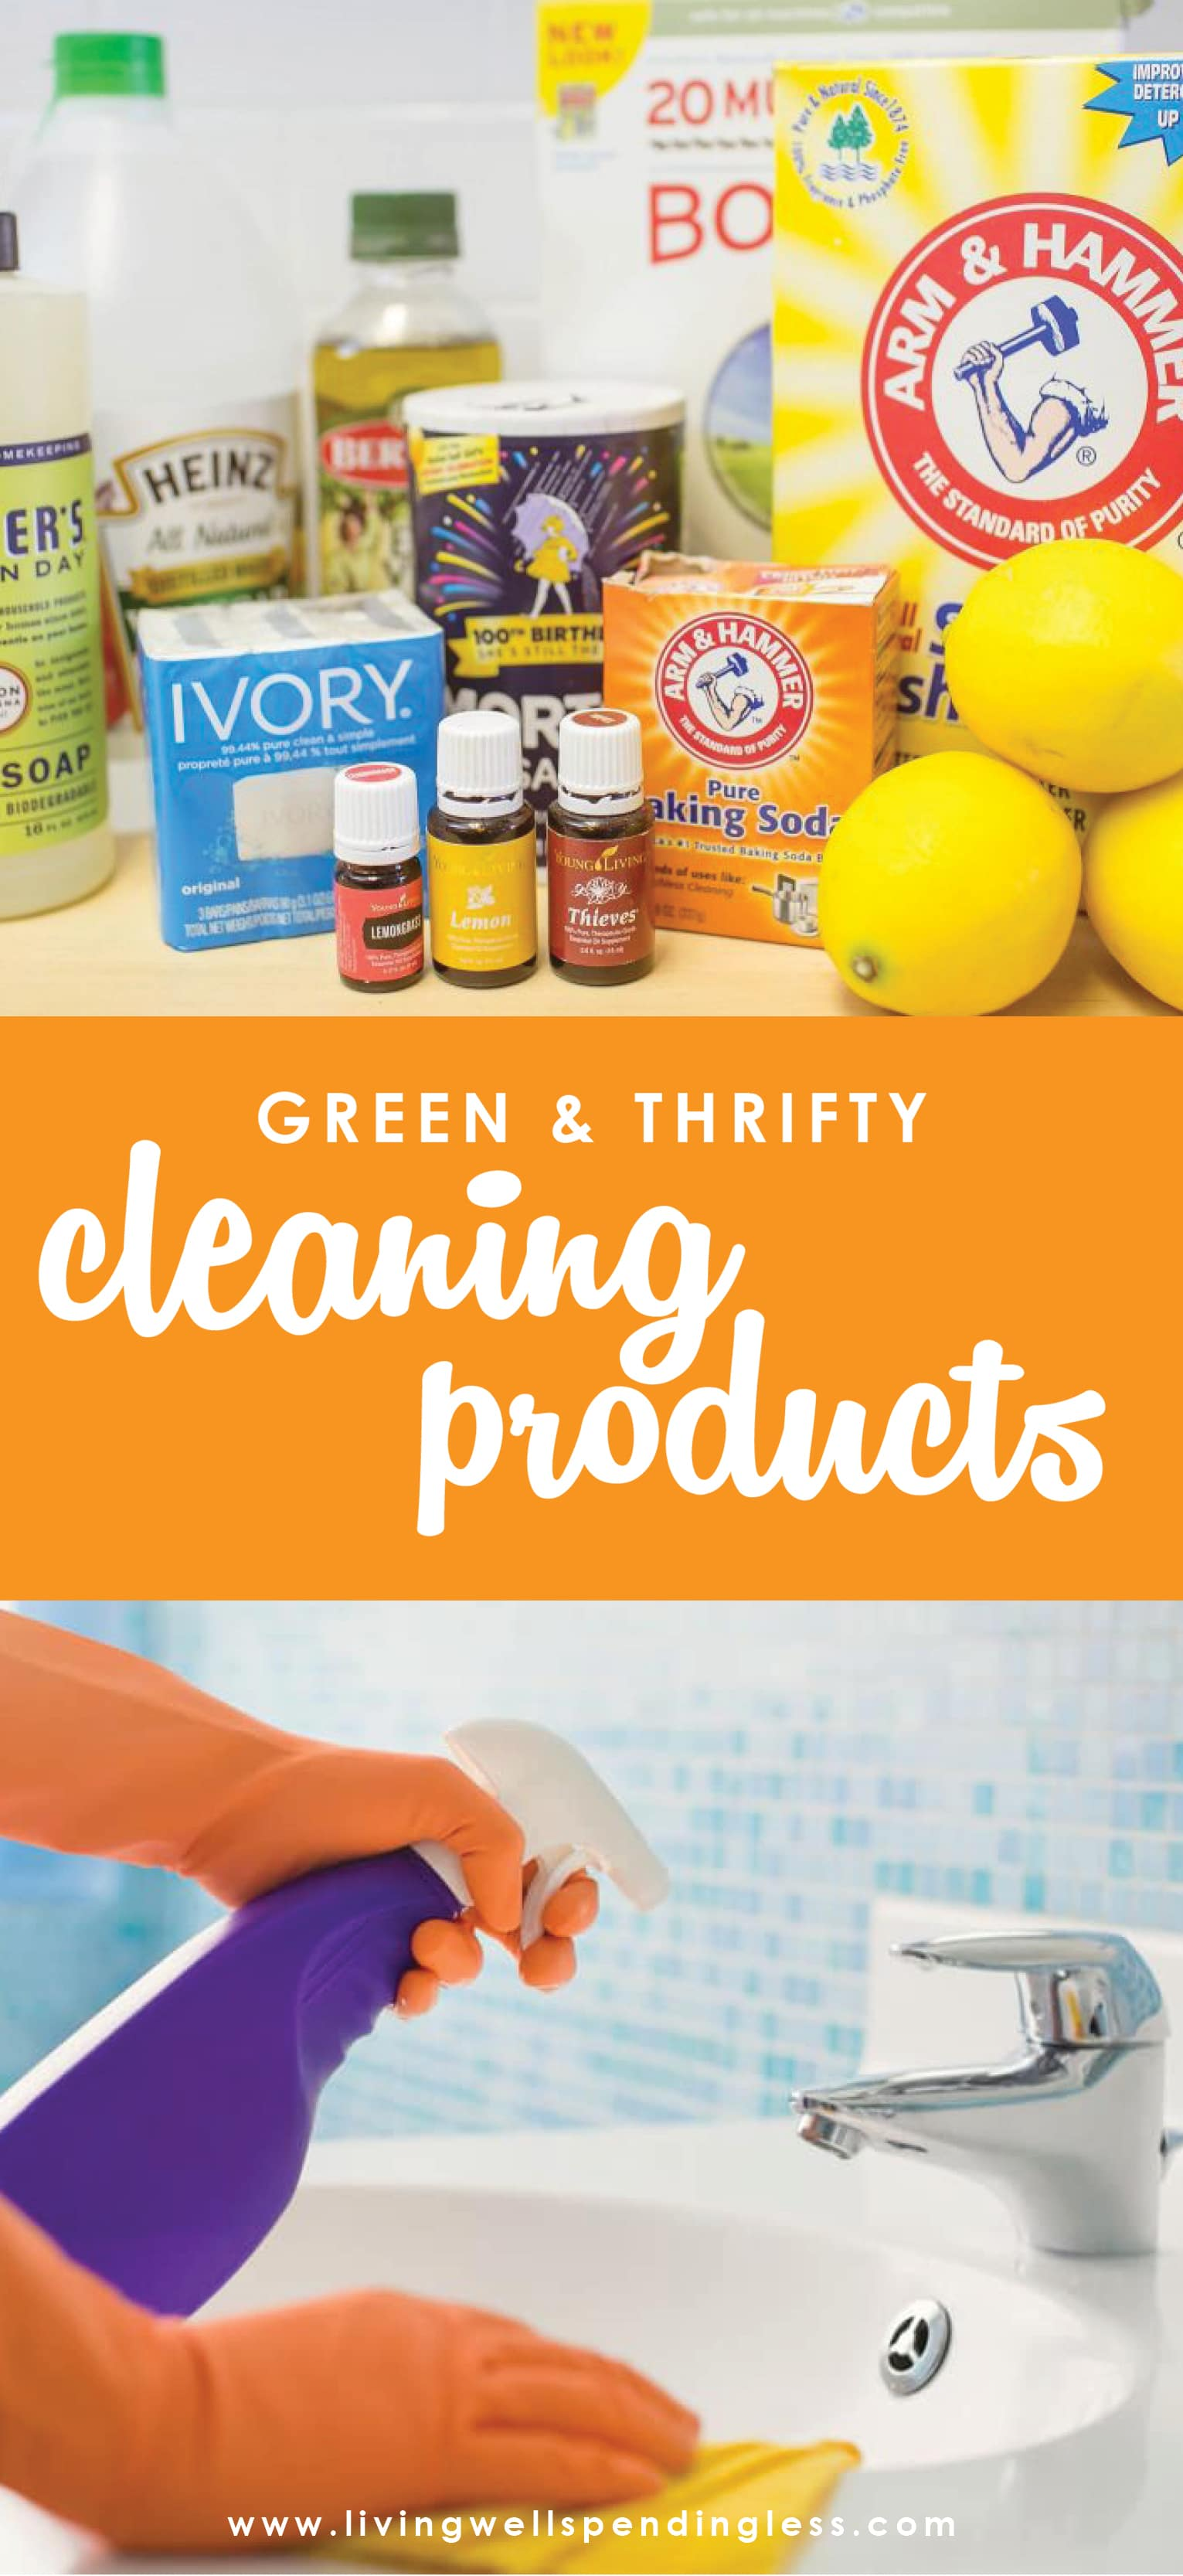 Did you know just 10 pantry staples combined 10 different ways can create 10 awesome homemade cleaners that will clean almost every surface in your house? Better yet? You probably even have most of them already on hand! There's even a cute cheat sheet to print out for your laundry room!  Green & Thrifty Cleaning Products | DIY Cleaning Products | Cleaning Ideas